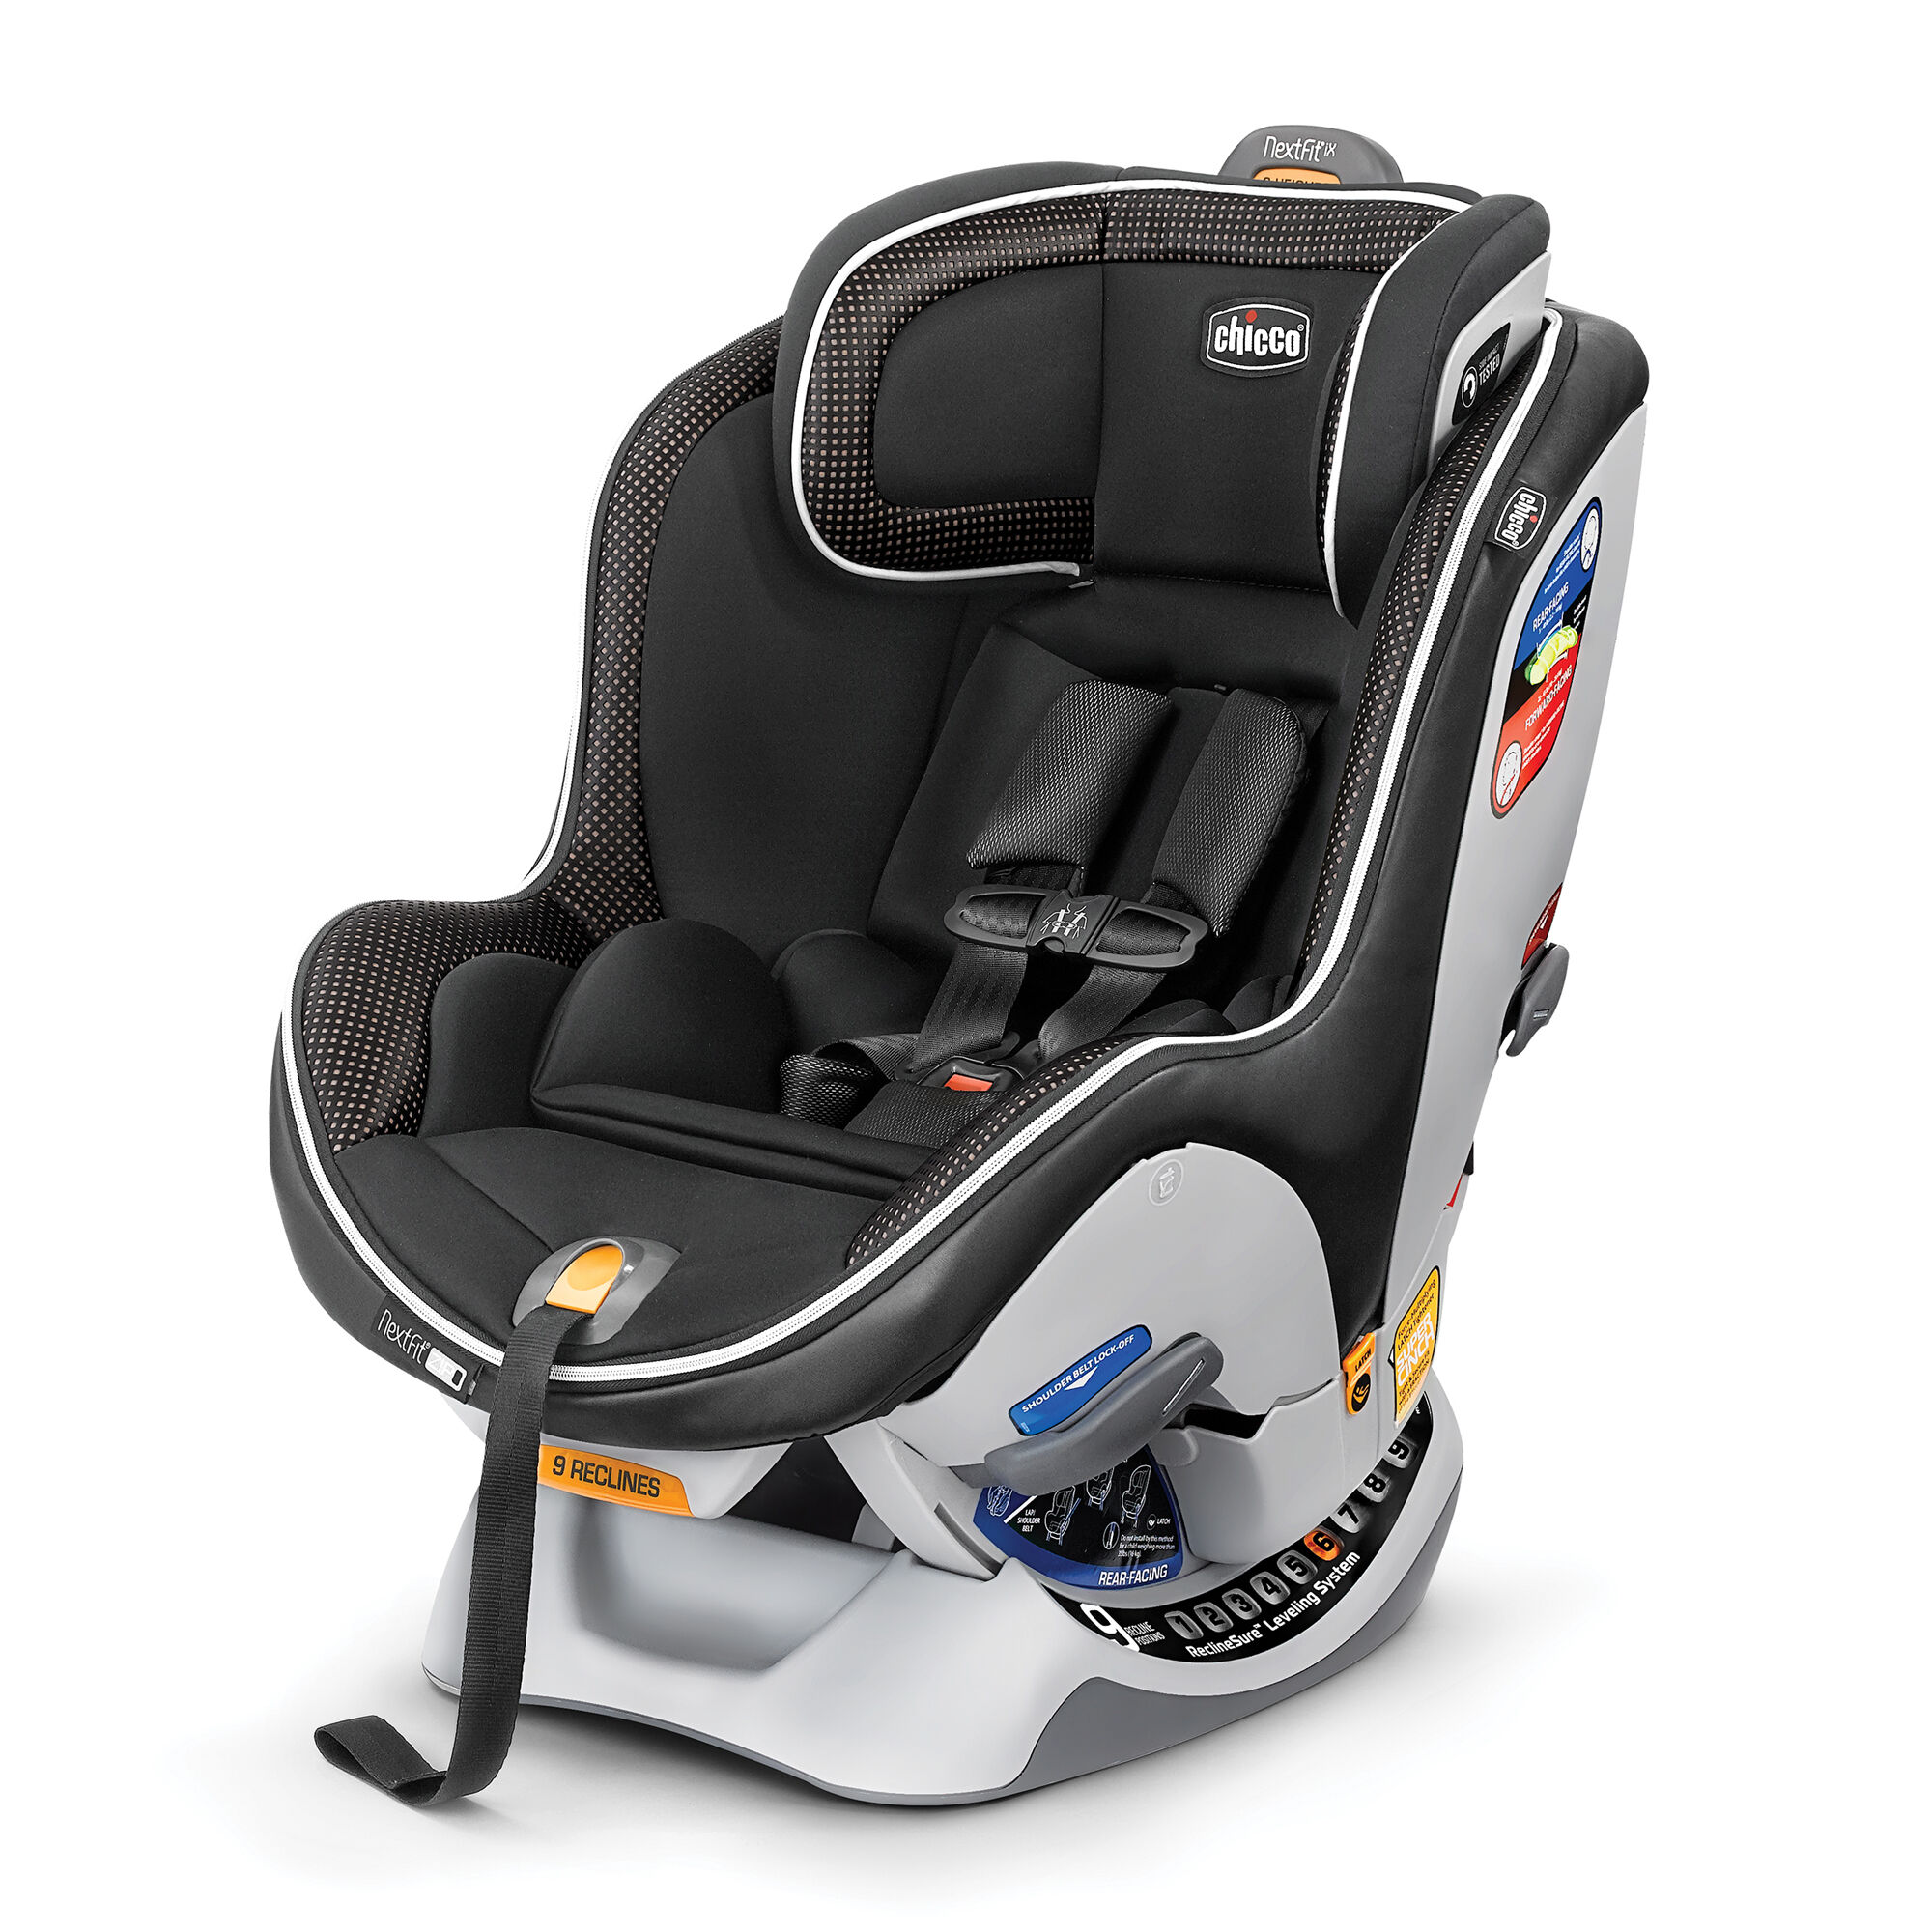 nextfit ix zip luxe convertible car seat dolce chicco. Black Bedroom Furniture Sets. Home Design Ideas